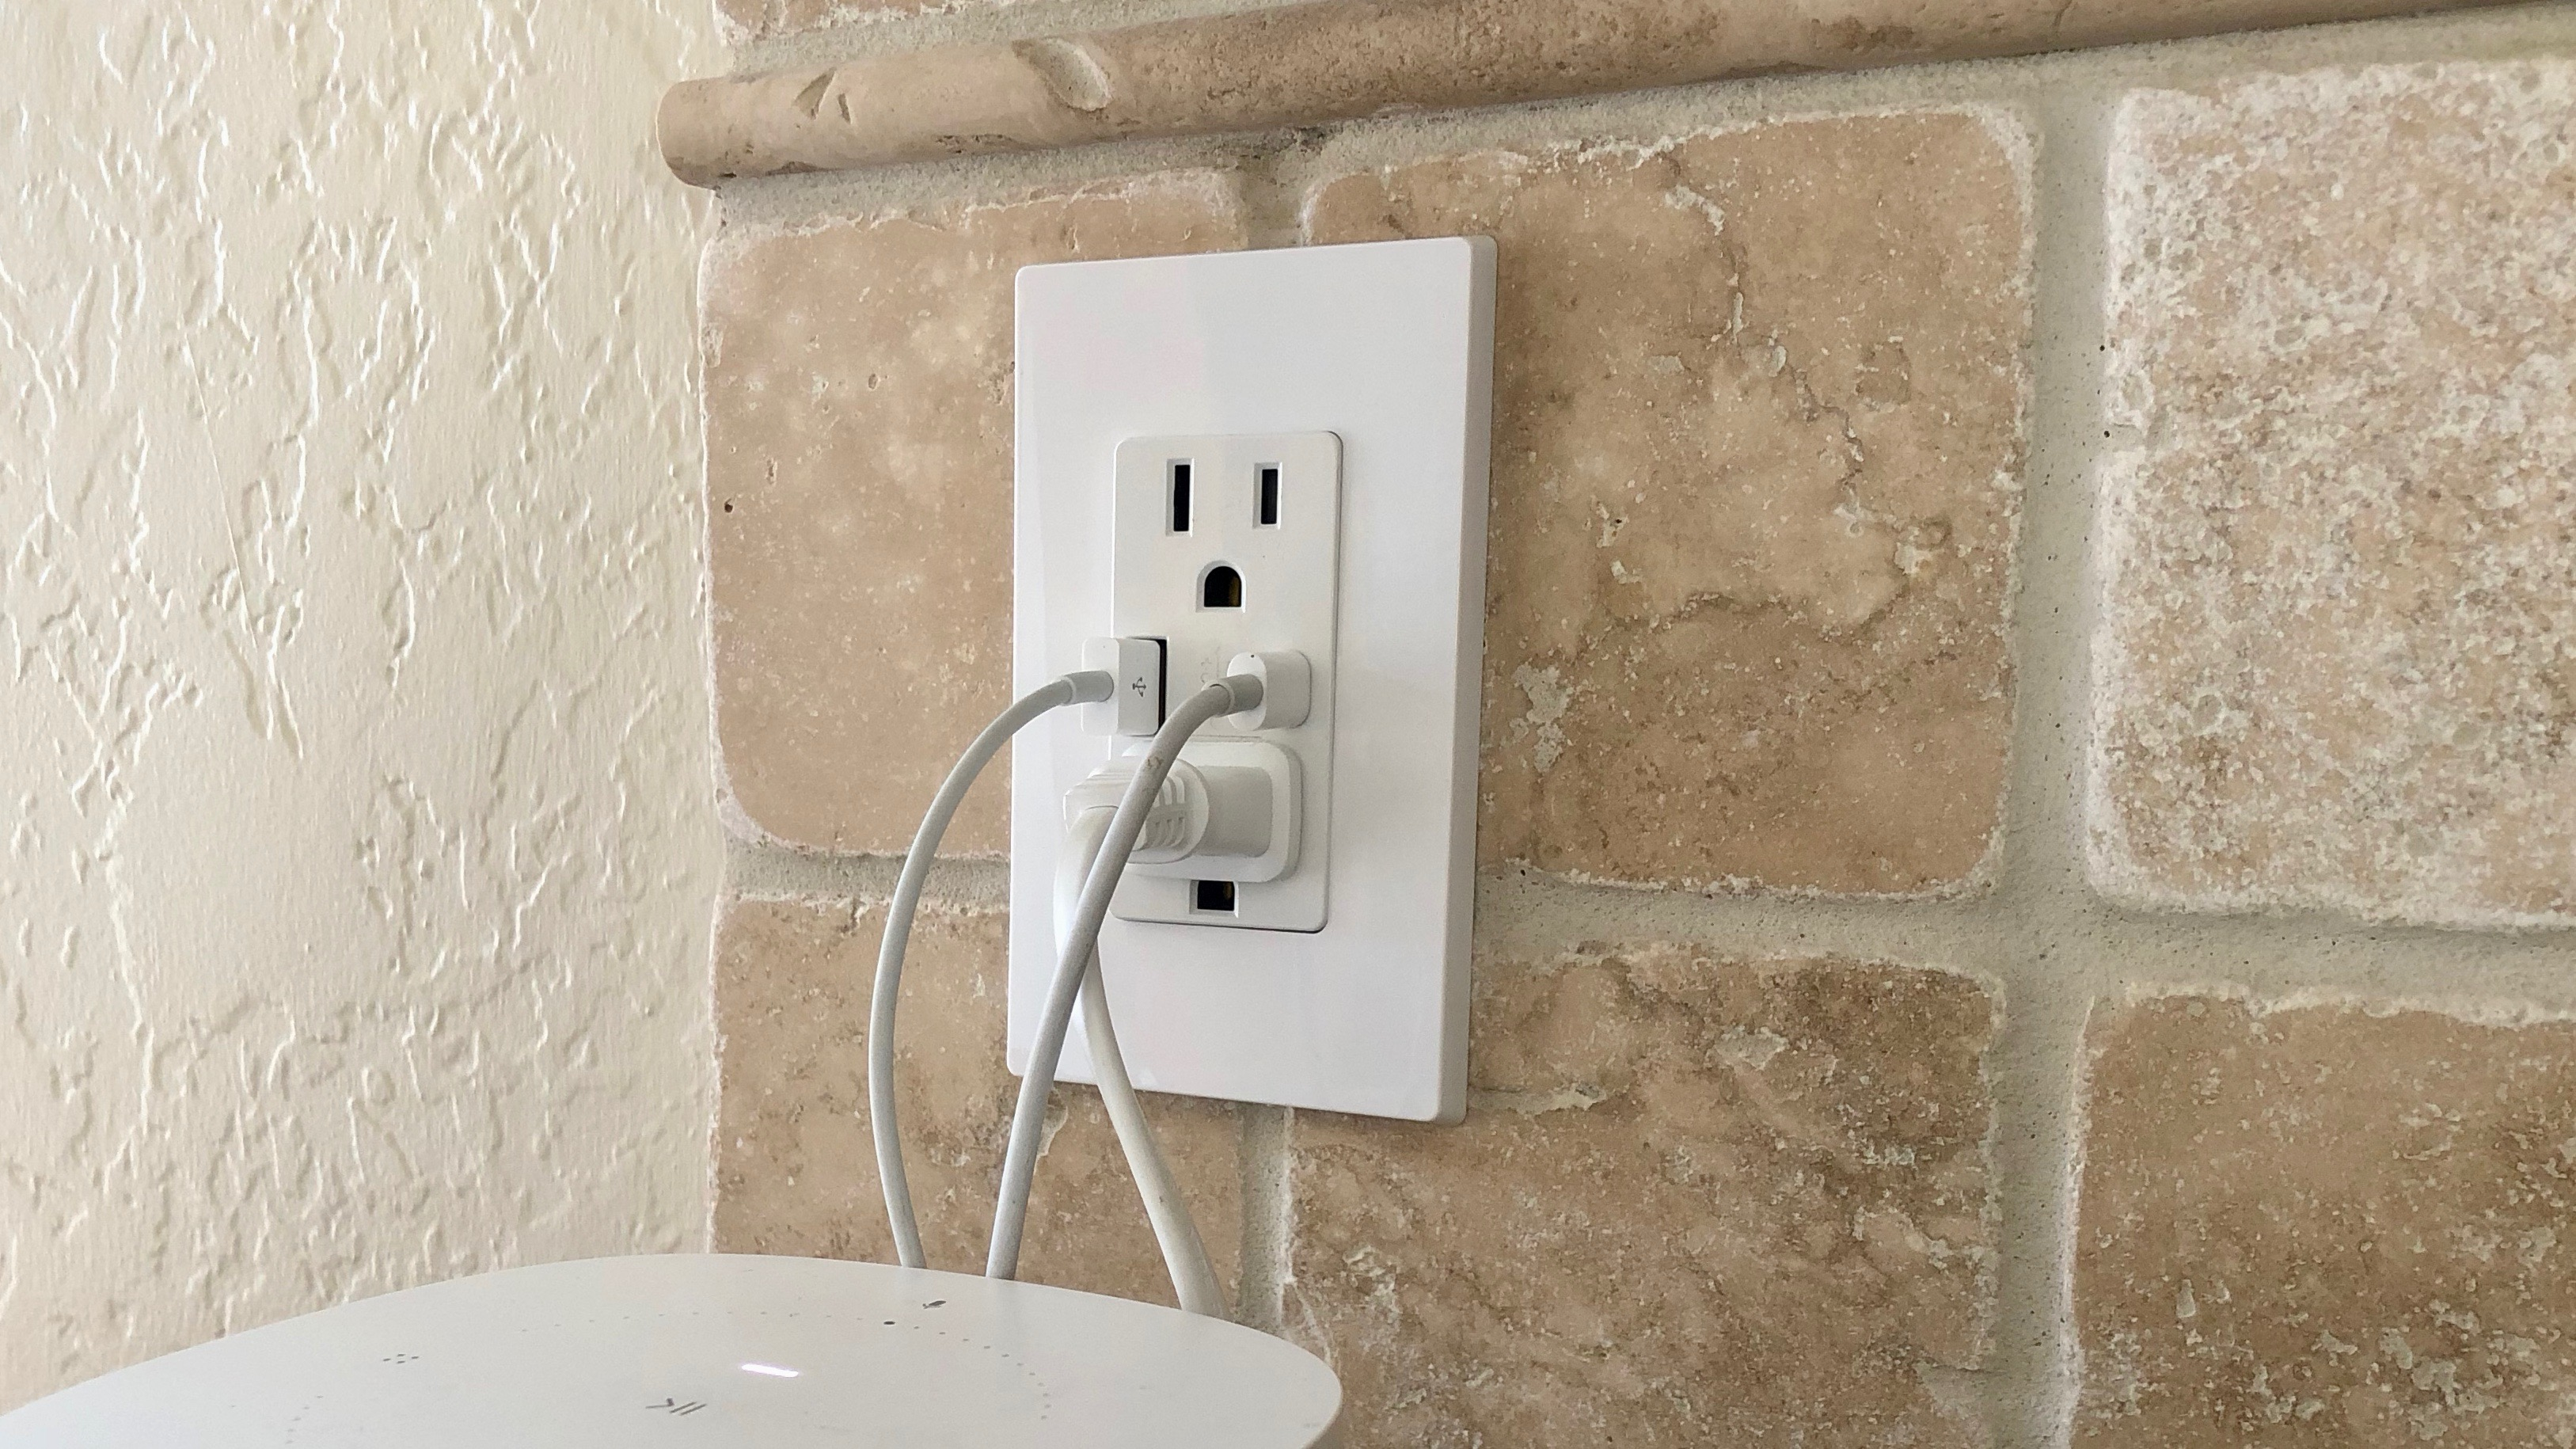 Usb Outlet Switch Wiring Electrical Diagram An To A Review Levitons C Wall Offers Lots Of Charging Plug